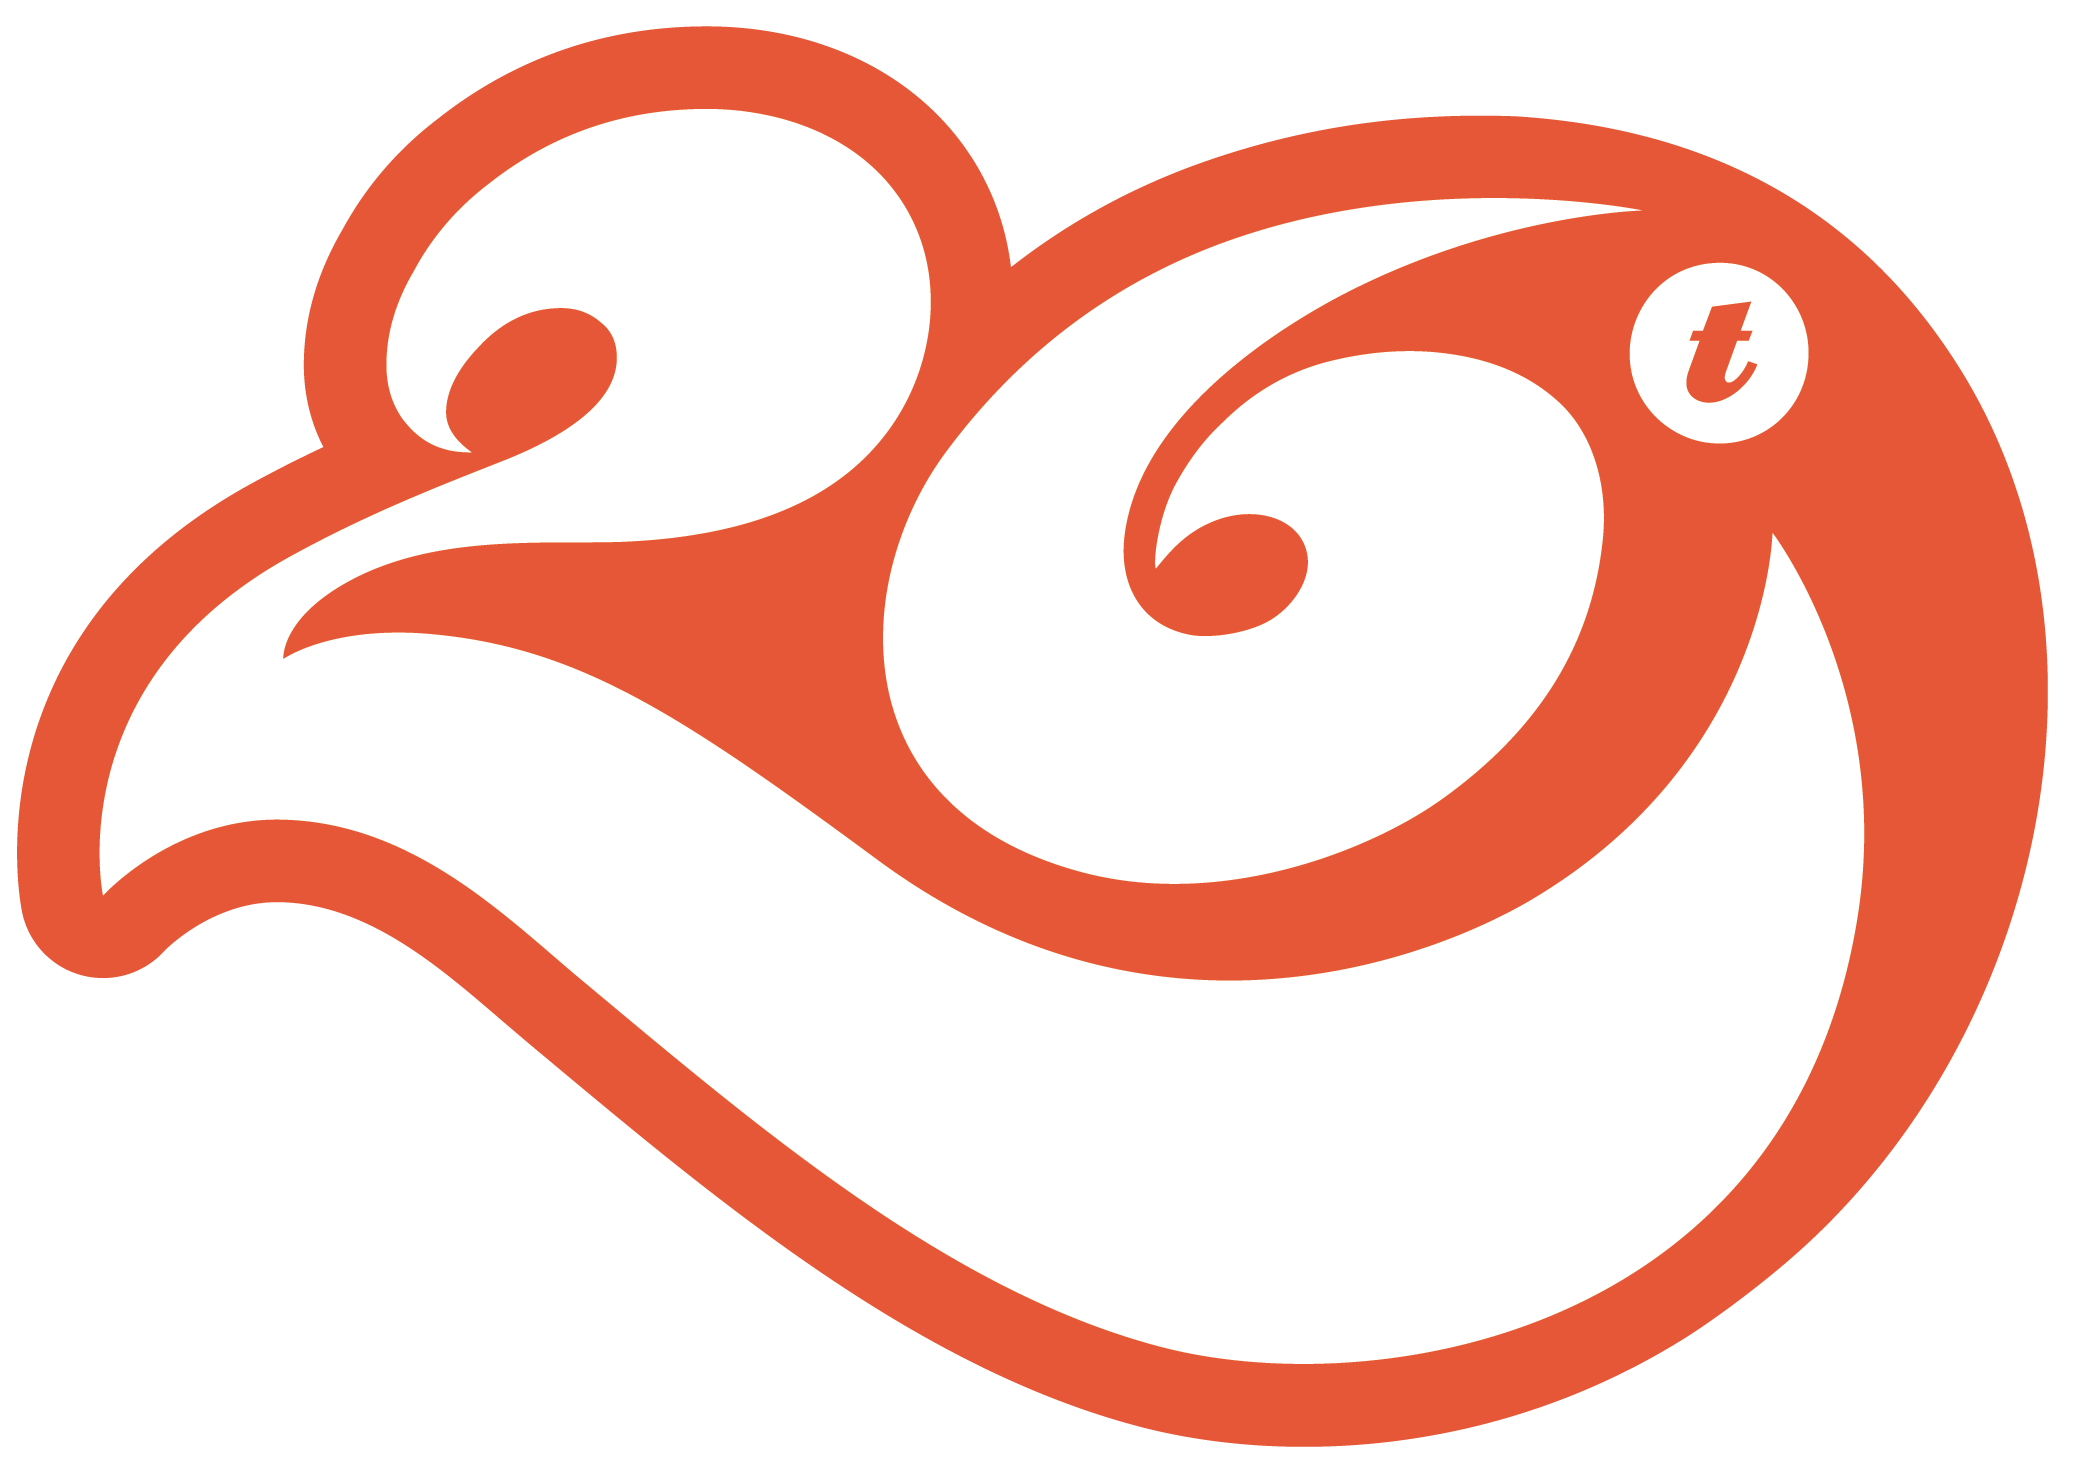 File:T26 Digital Type Foundry logo png - Wikipedia